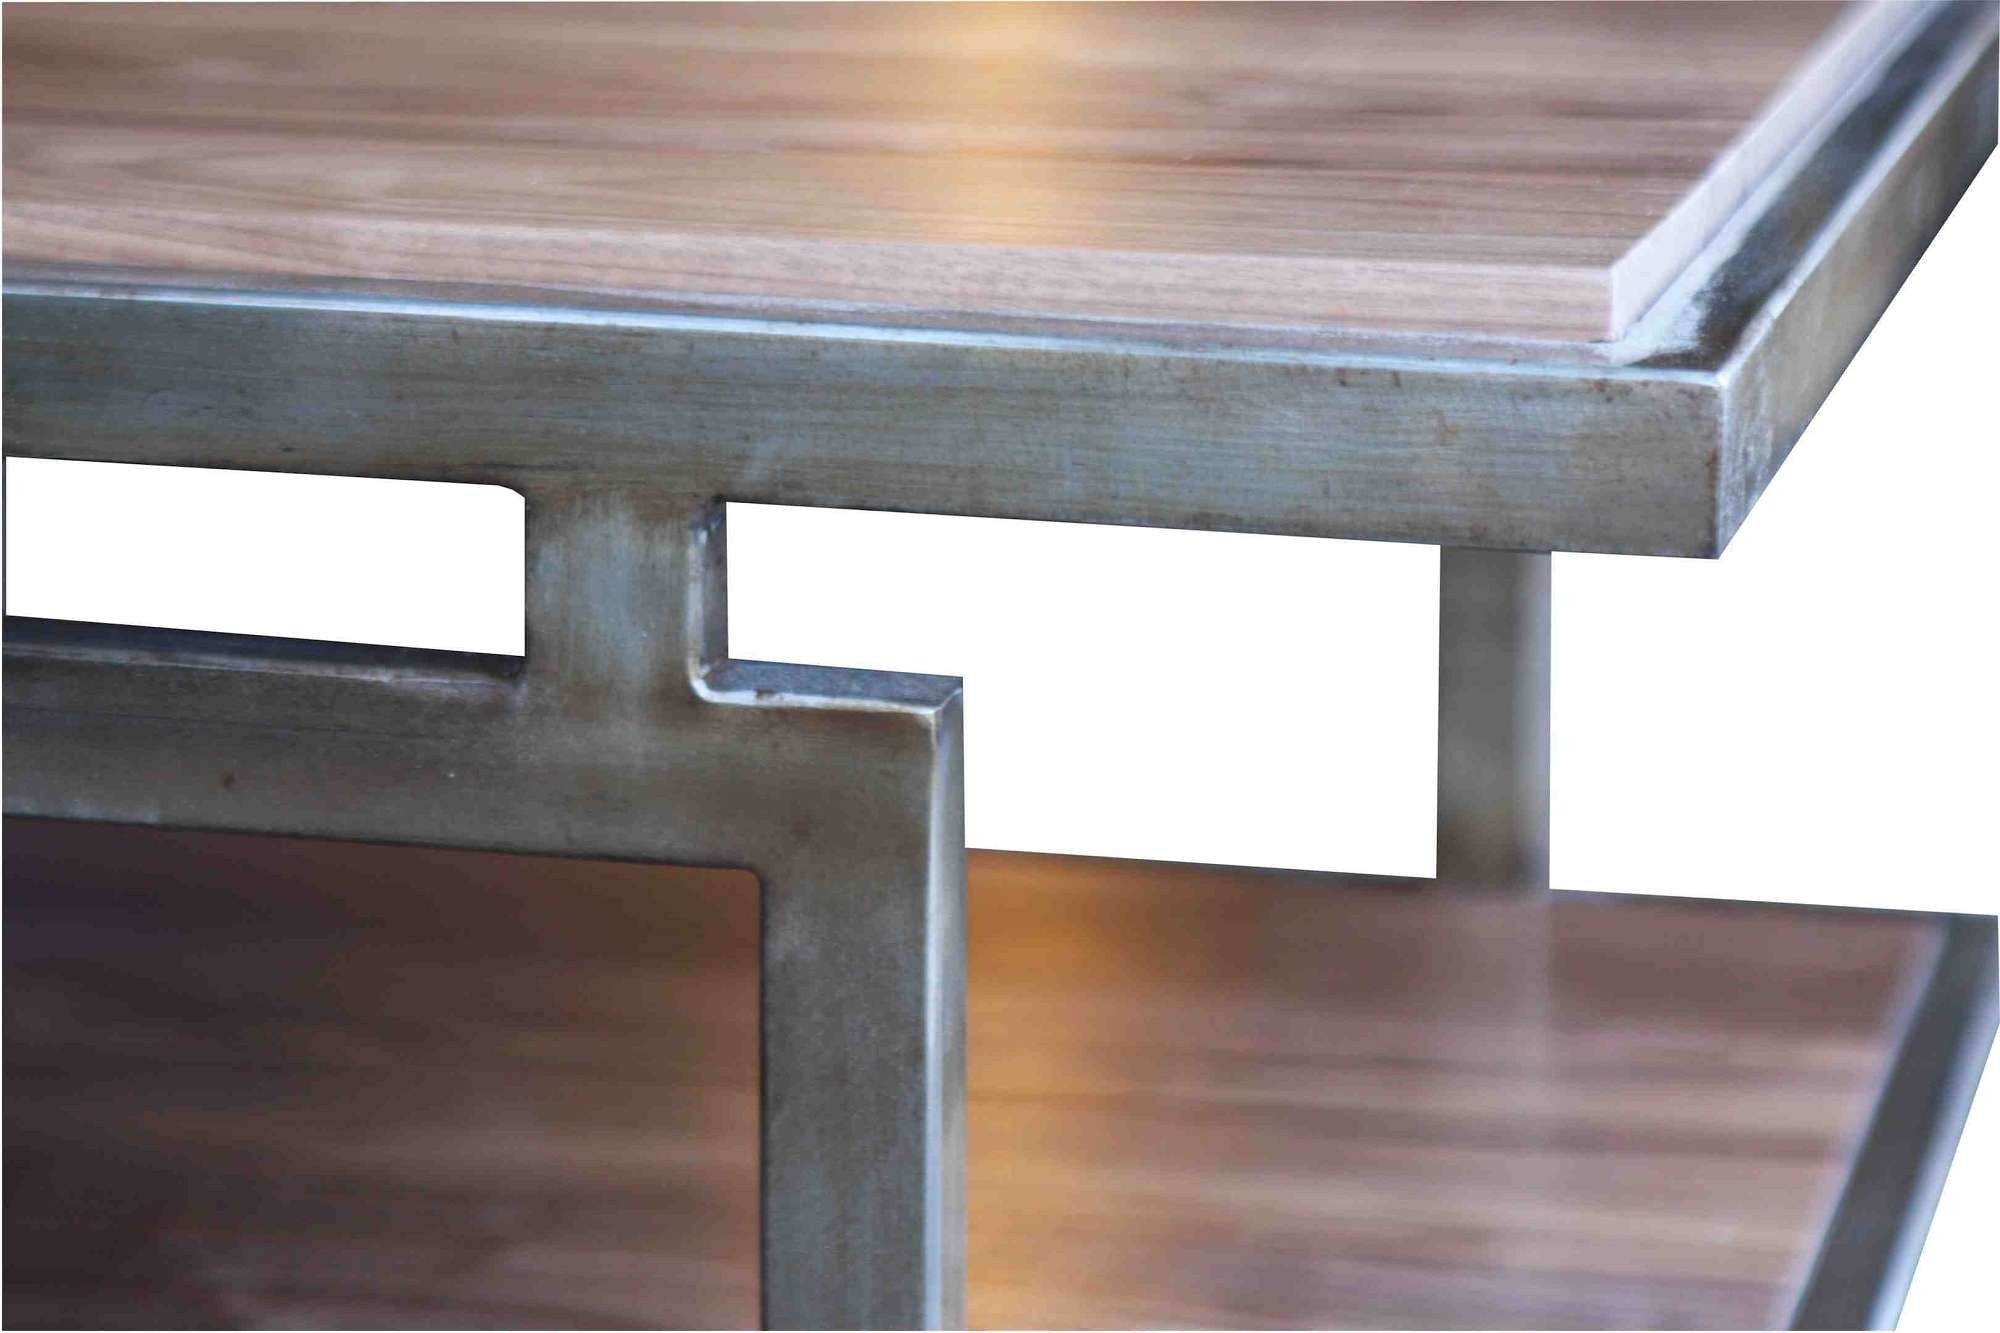 Preferred Metal And Wood Coffee Tables Throughout High Coffee Offered Standard Wood Coffee Table With Metal Legs (View 16 of 20)